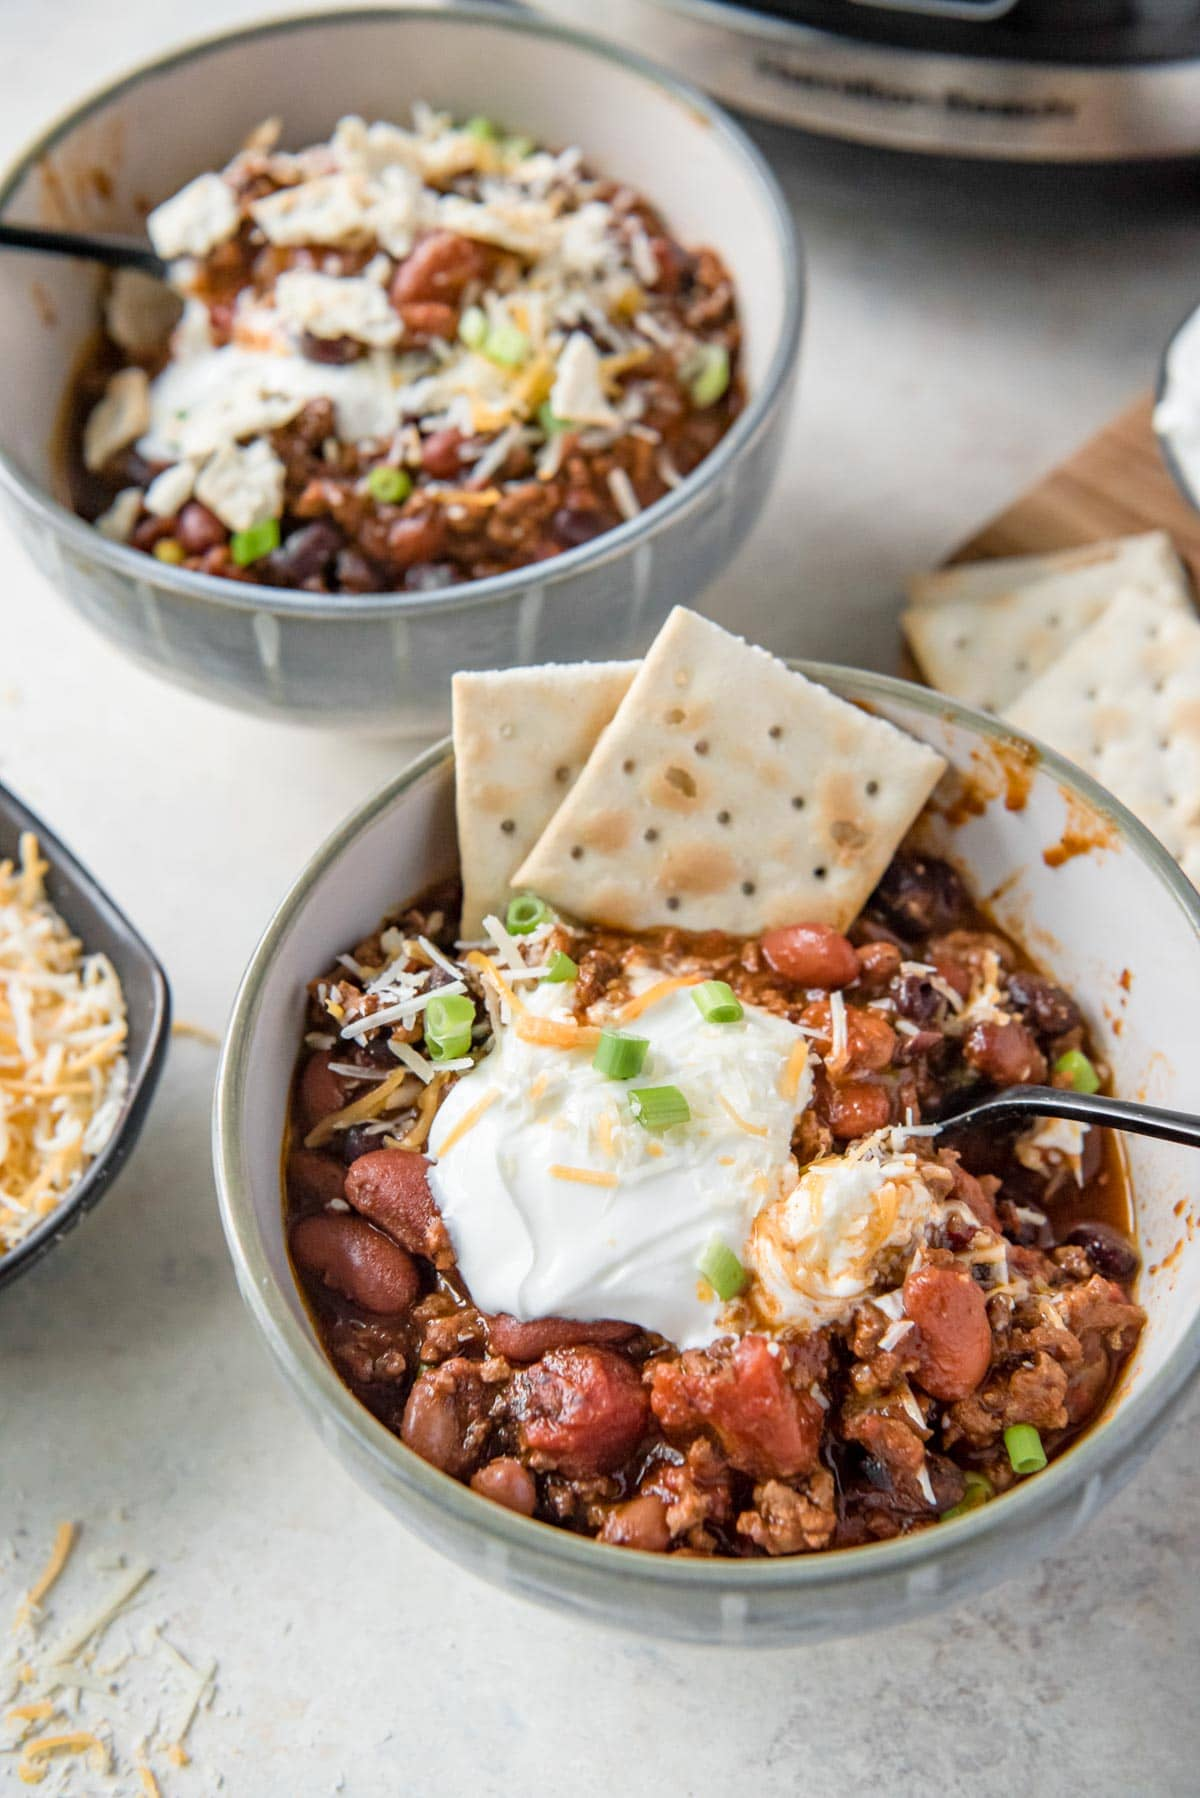 bowls with chili, sour cream, cheese, and crackers, spoon, slow cooker